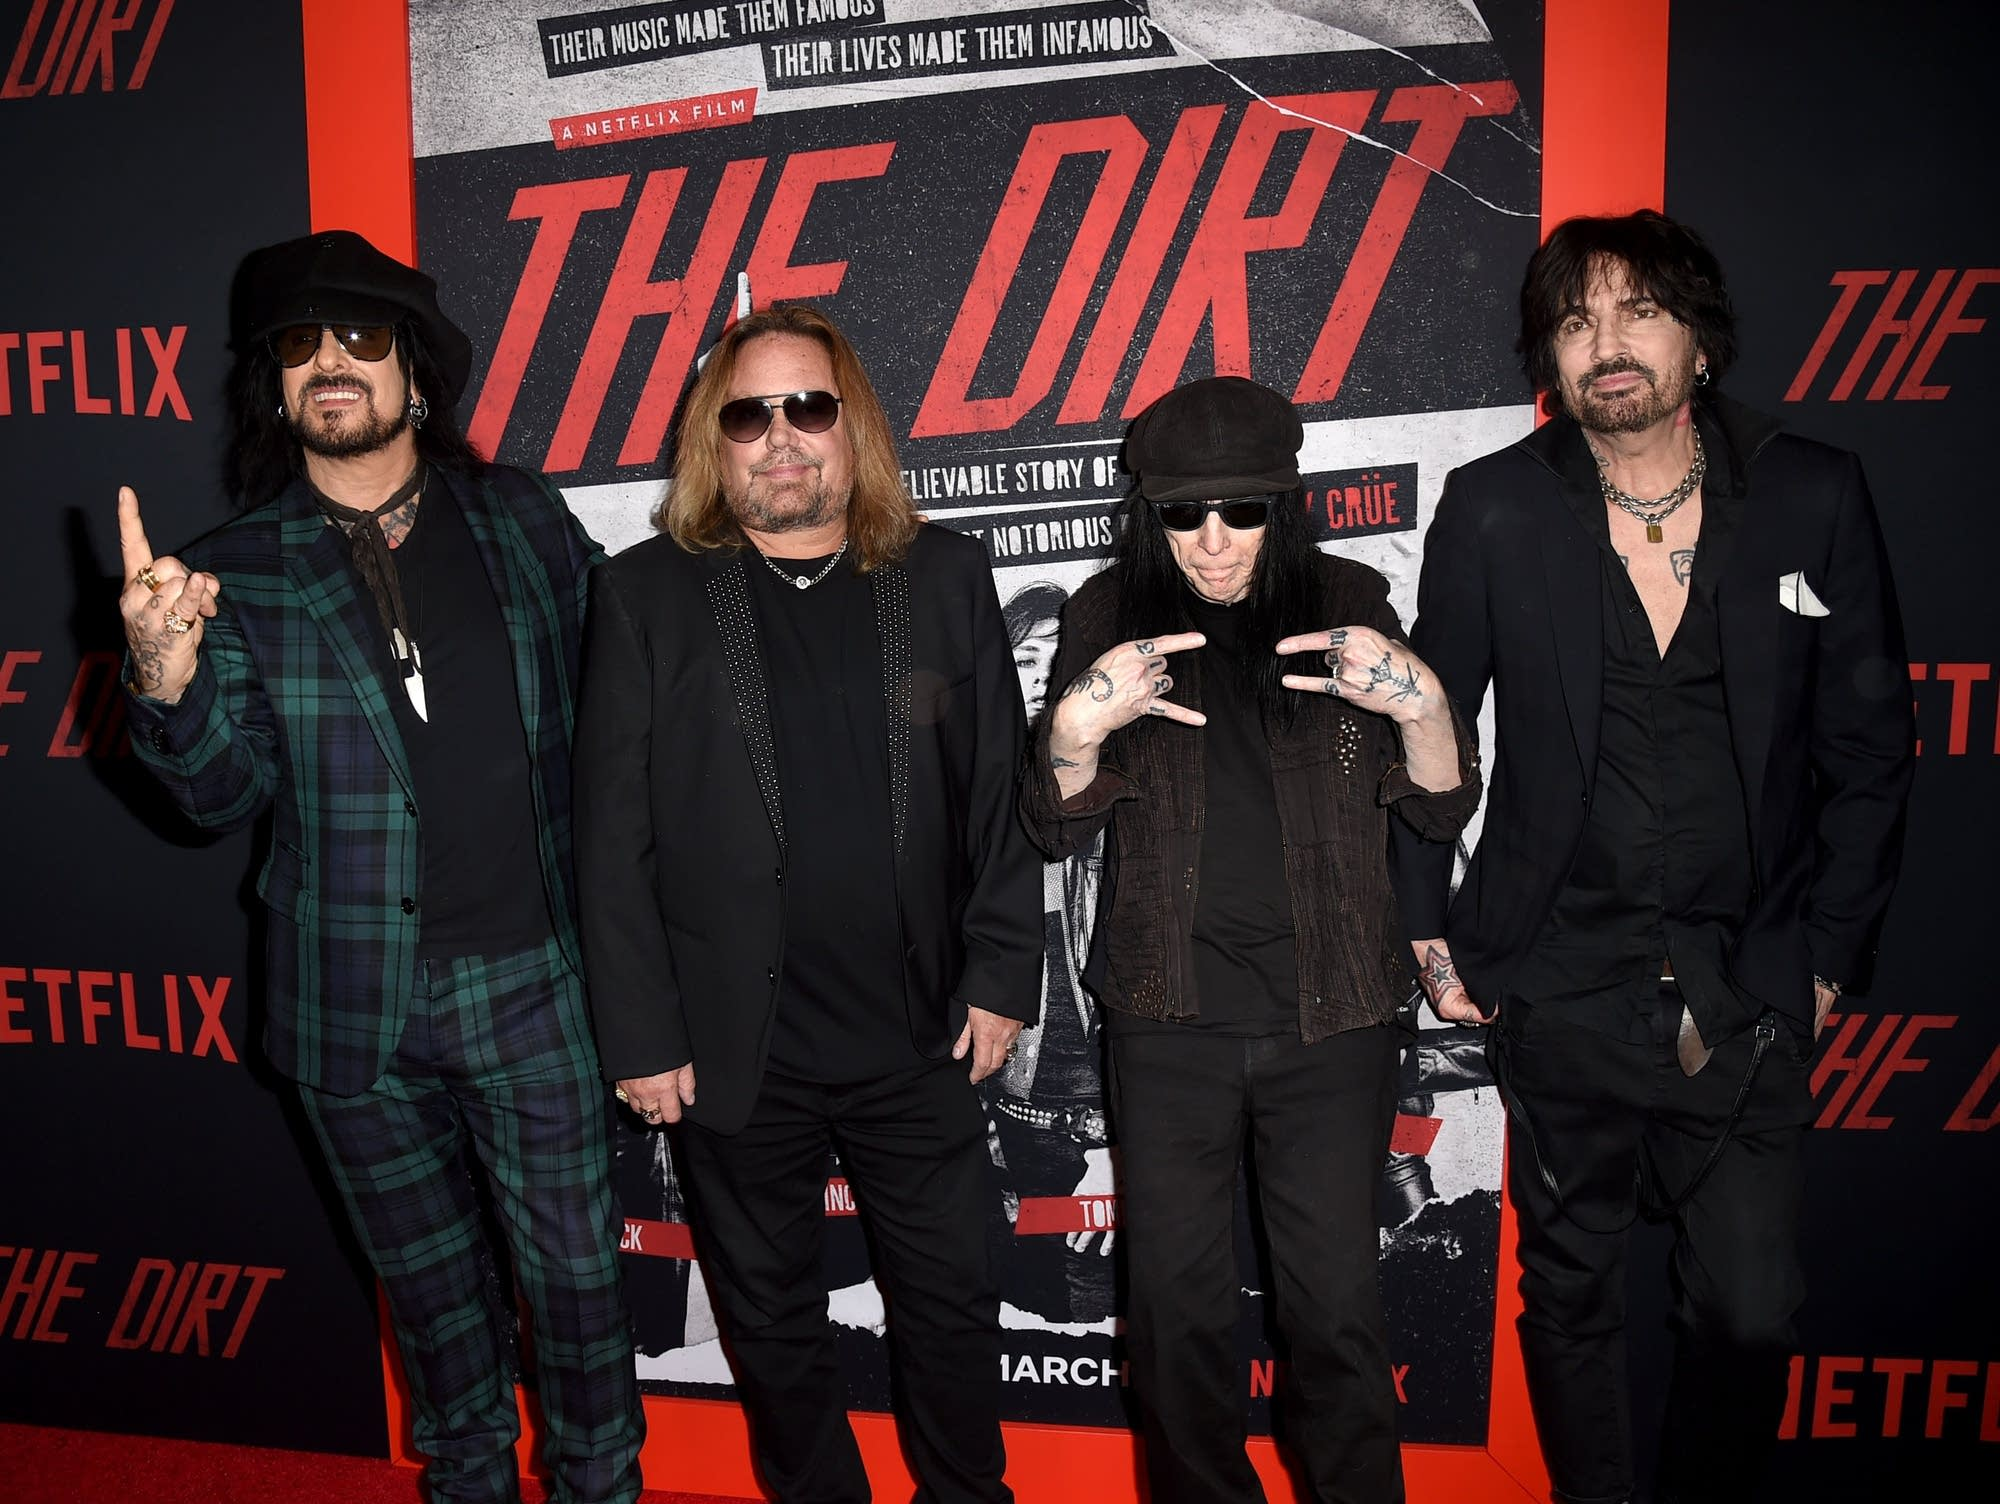 Motley Crue arrive at 'The Dirt' biopic premiere.